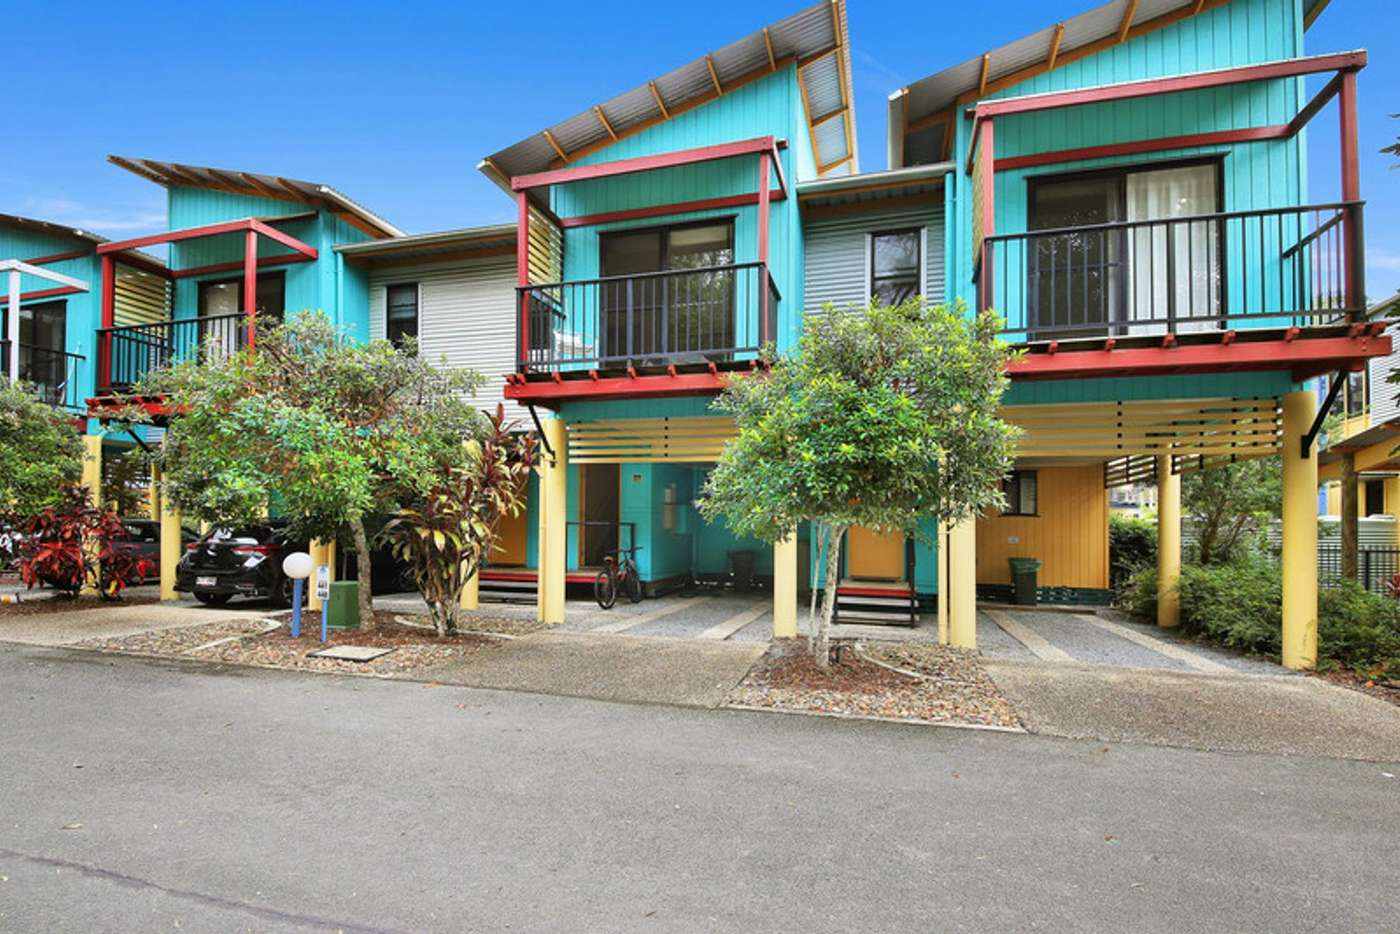 Main view of Homely apartment listing, 443/3 Hilton Terrace, Tewantin QLD 4565